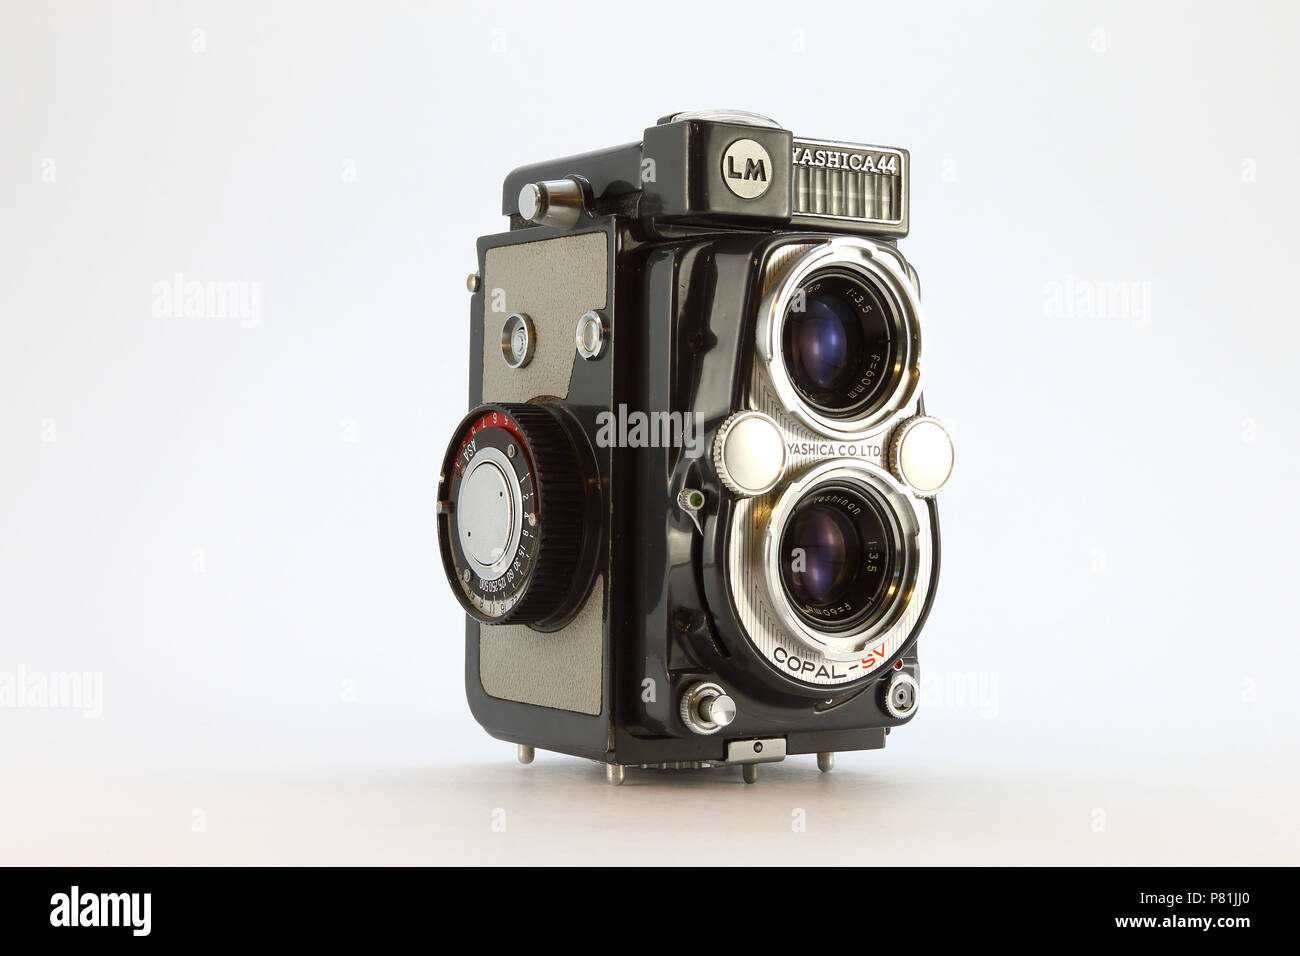 Yashica-44LM from the 1950's - Stock Image